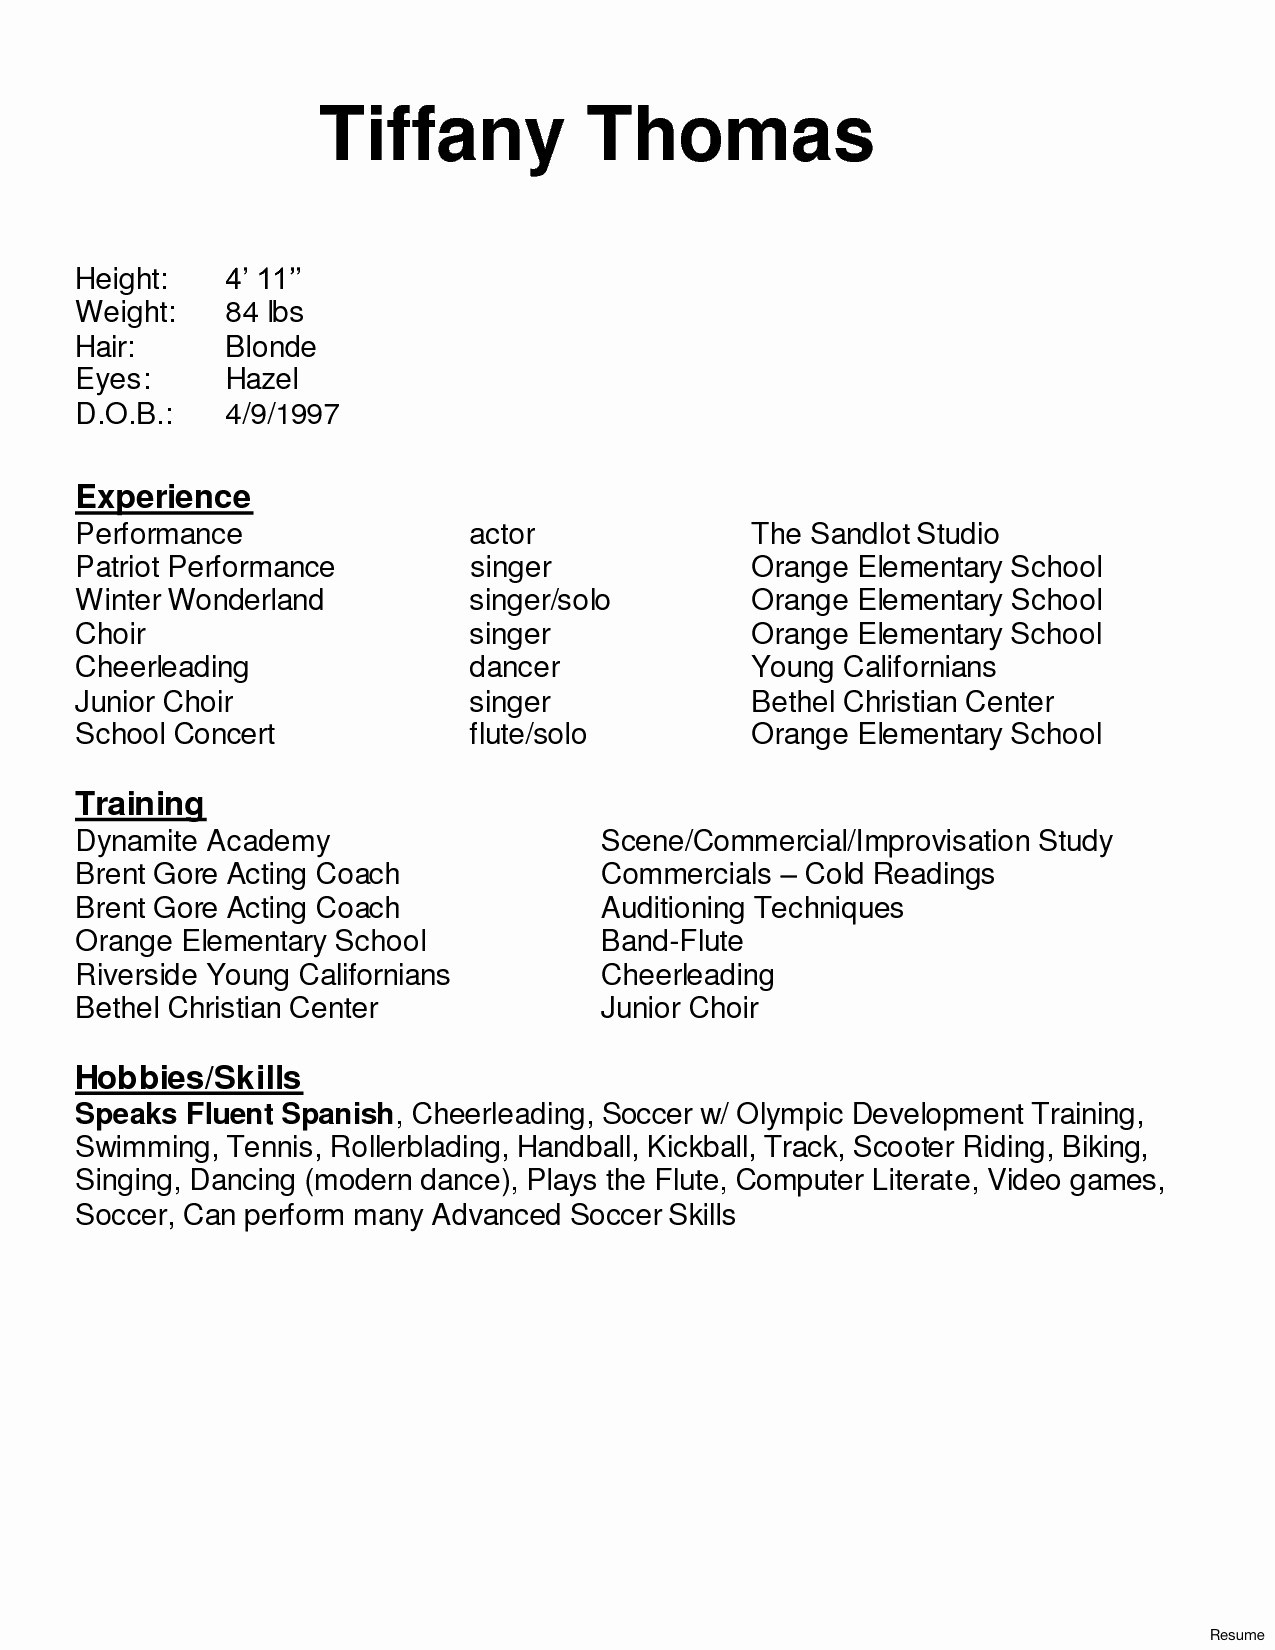 Acting Resume Template Google Docs - Puter Literacy Skills Examples for Resume Lovely Free Acting